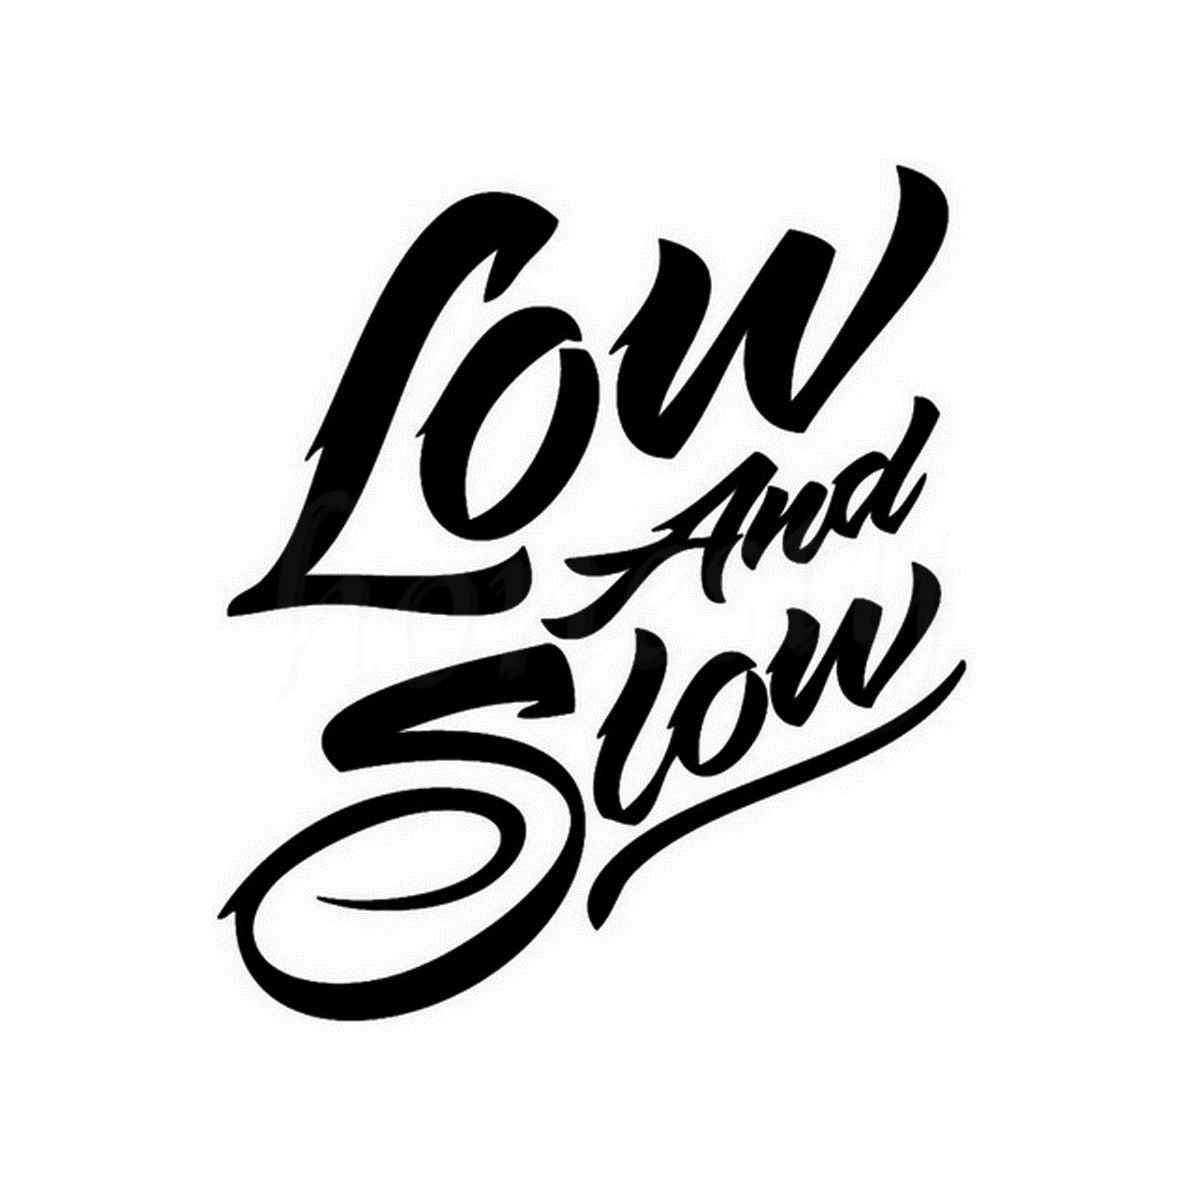 Decoration App Low And Slow Cool Fashion Art Font Text Car Window Truck